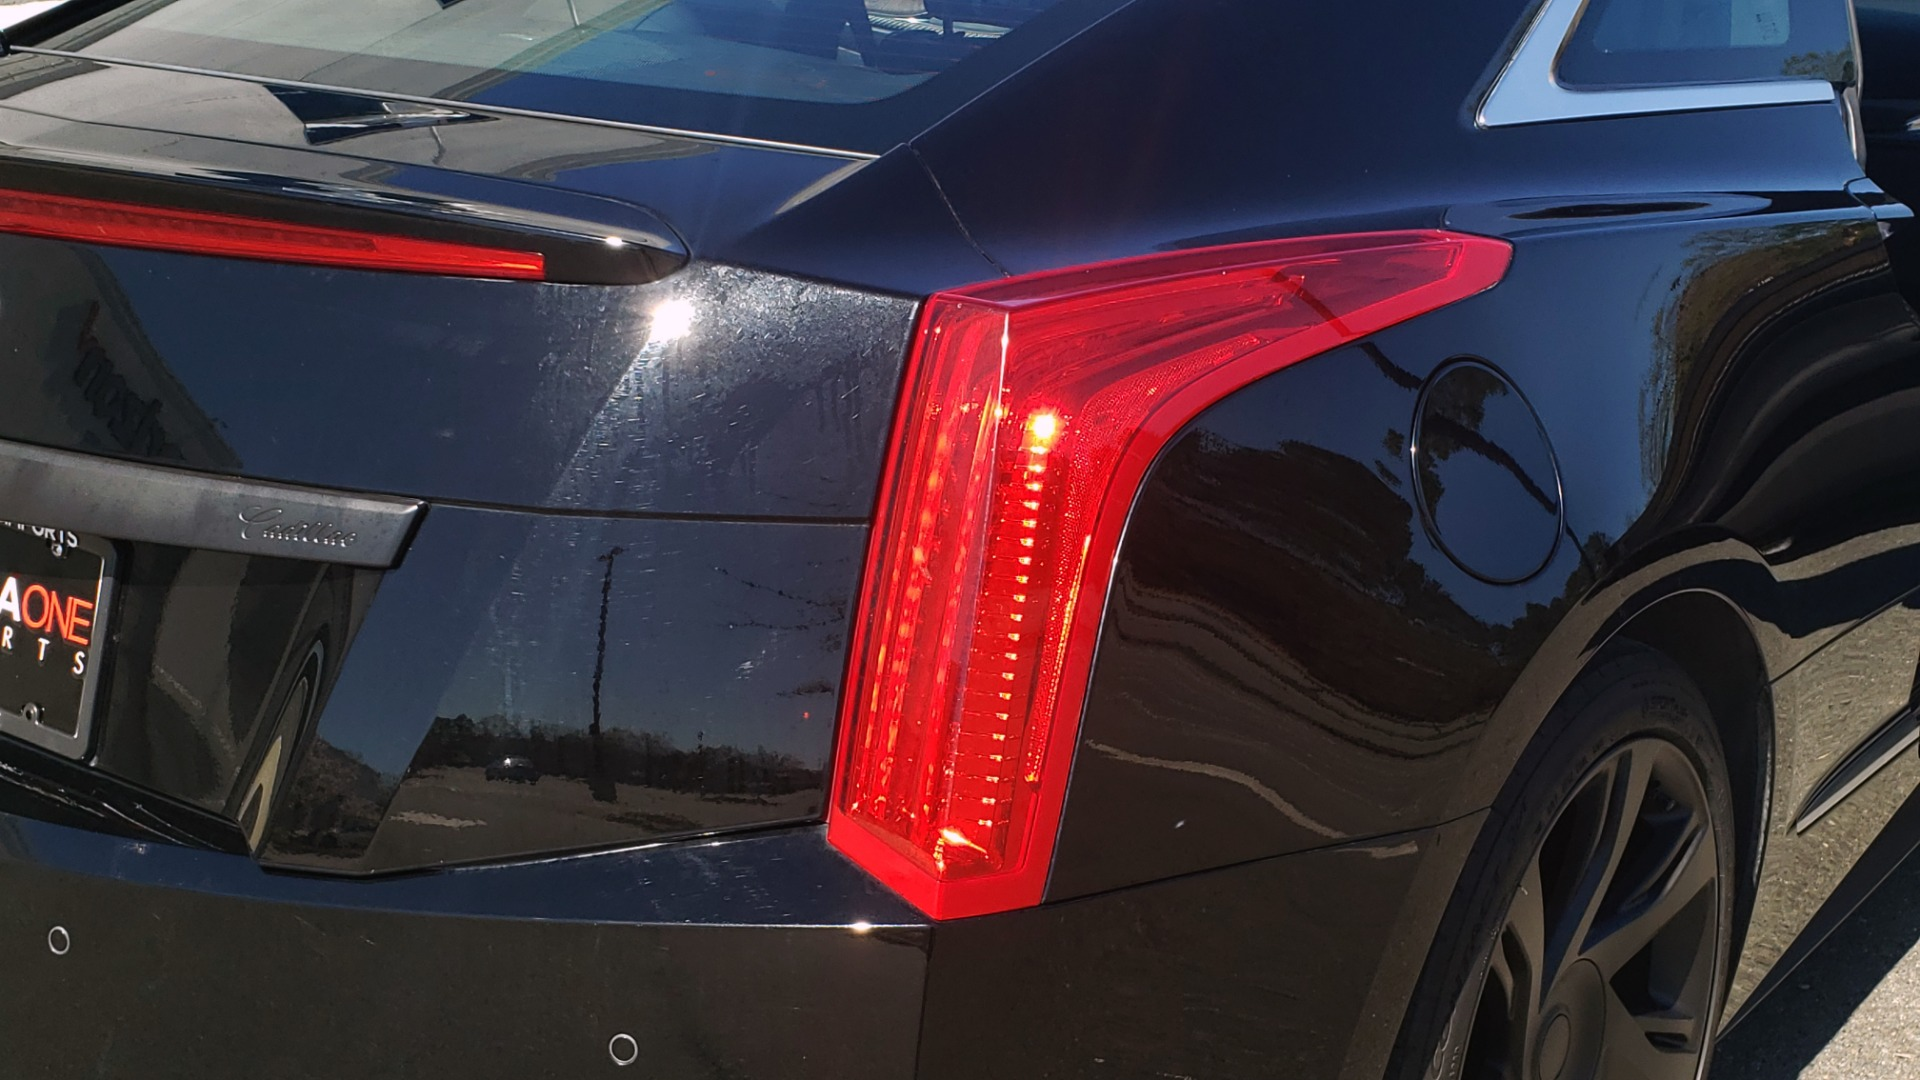 Used 2014 Cadillac ELR 2DR COUPE / HYBRID / NAV / BOSE / HEATED SEATS / REARVIEW for sale $19,995 at Formula Imports in Charlotte NC 28227 26